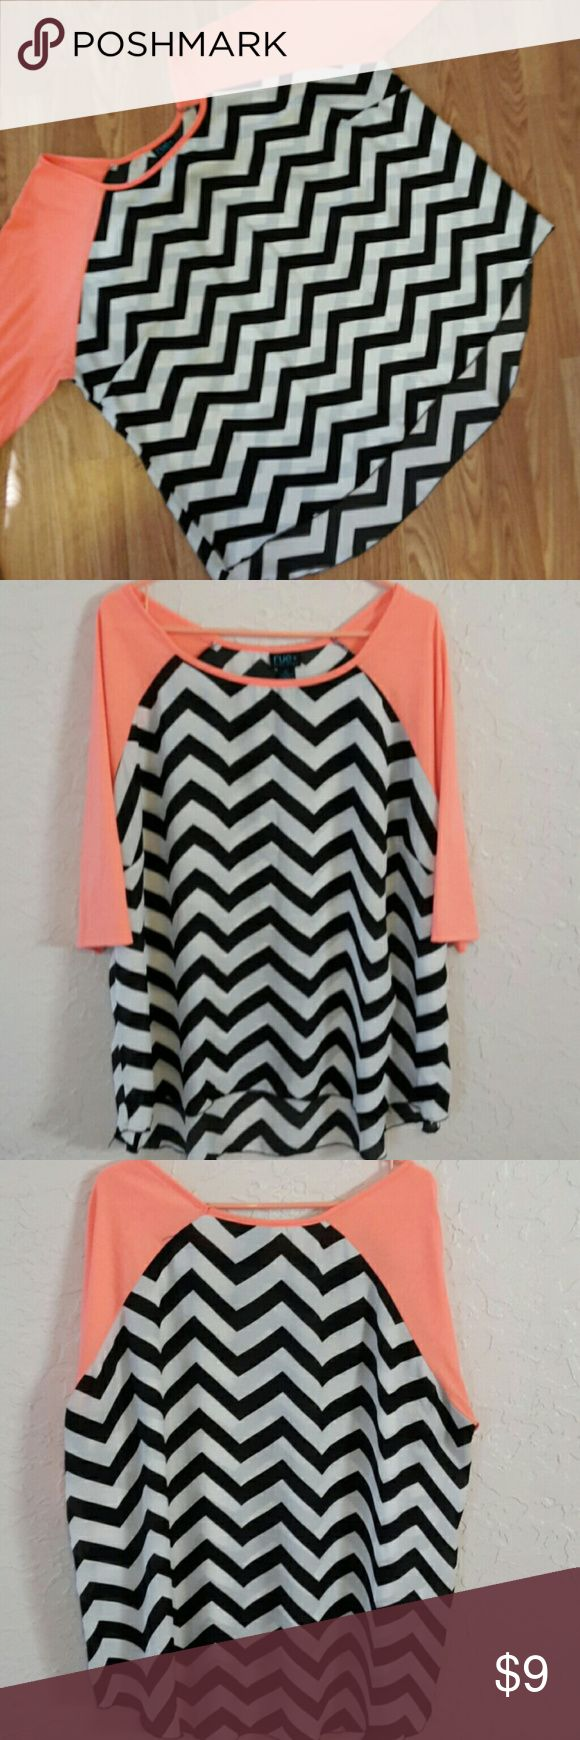 RUE+PLUS SIZES 3X CHEVRON BLOUSE Bright orange, black, white chevron print, hi-low, 3/4 sleeve, blouse with alot of flow and movement. Knit 100%  rayon. Woven 100% polyester. Has some piling under arms. This will reflect in price. rue+ Tops Blouses